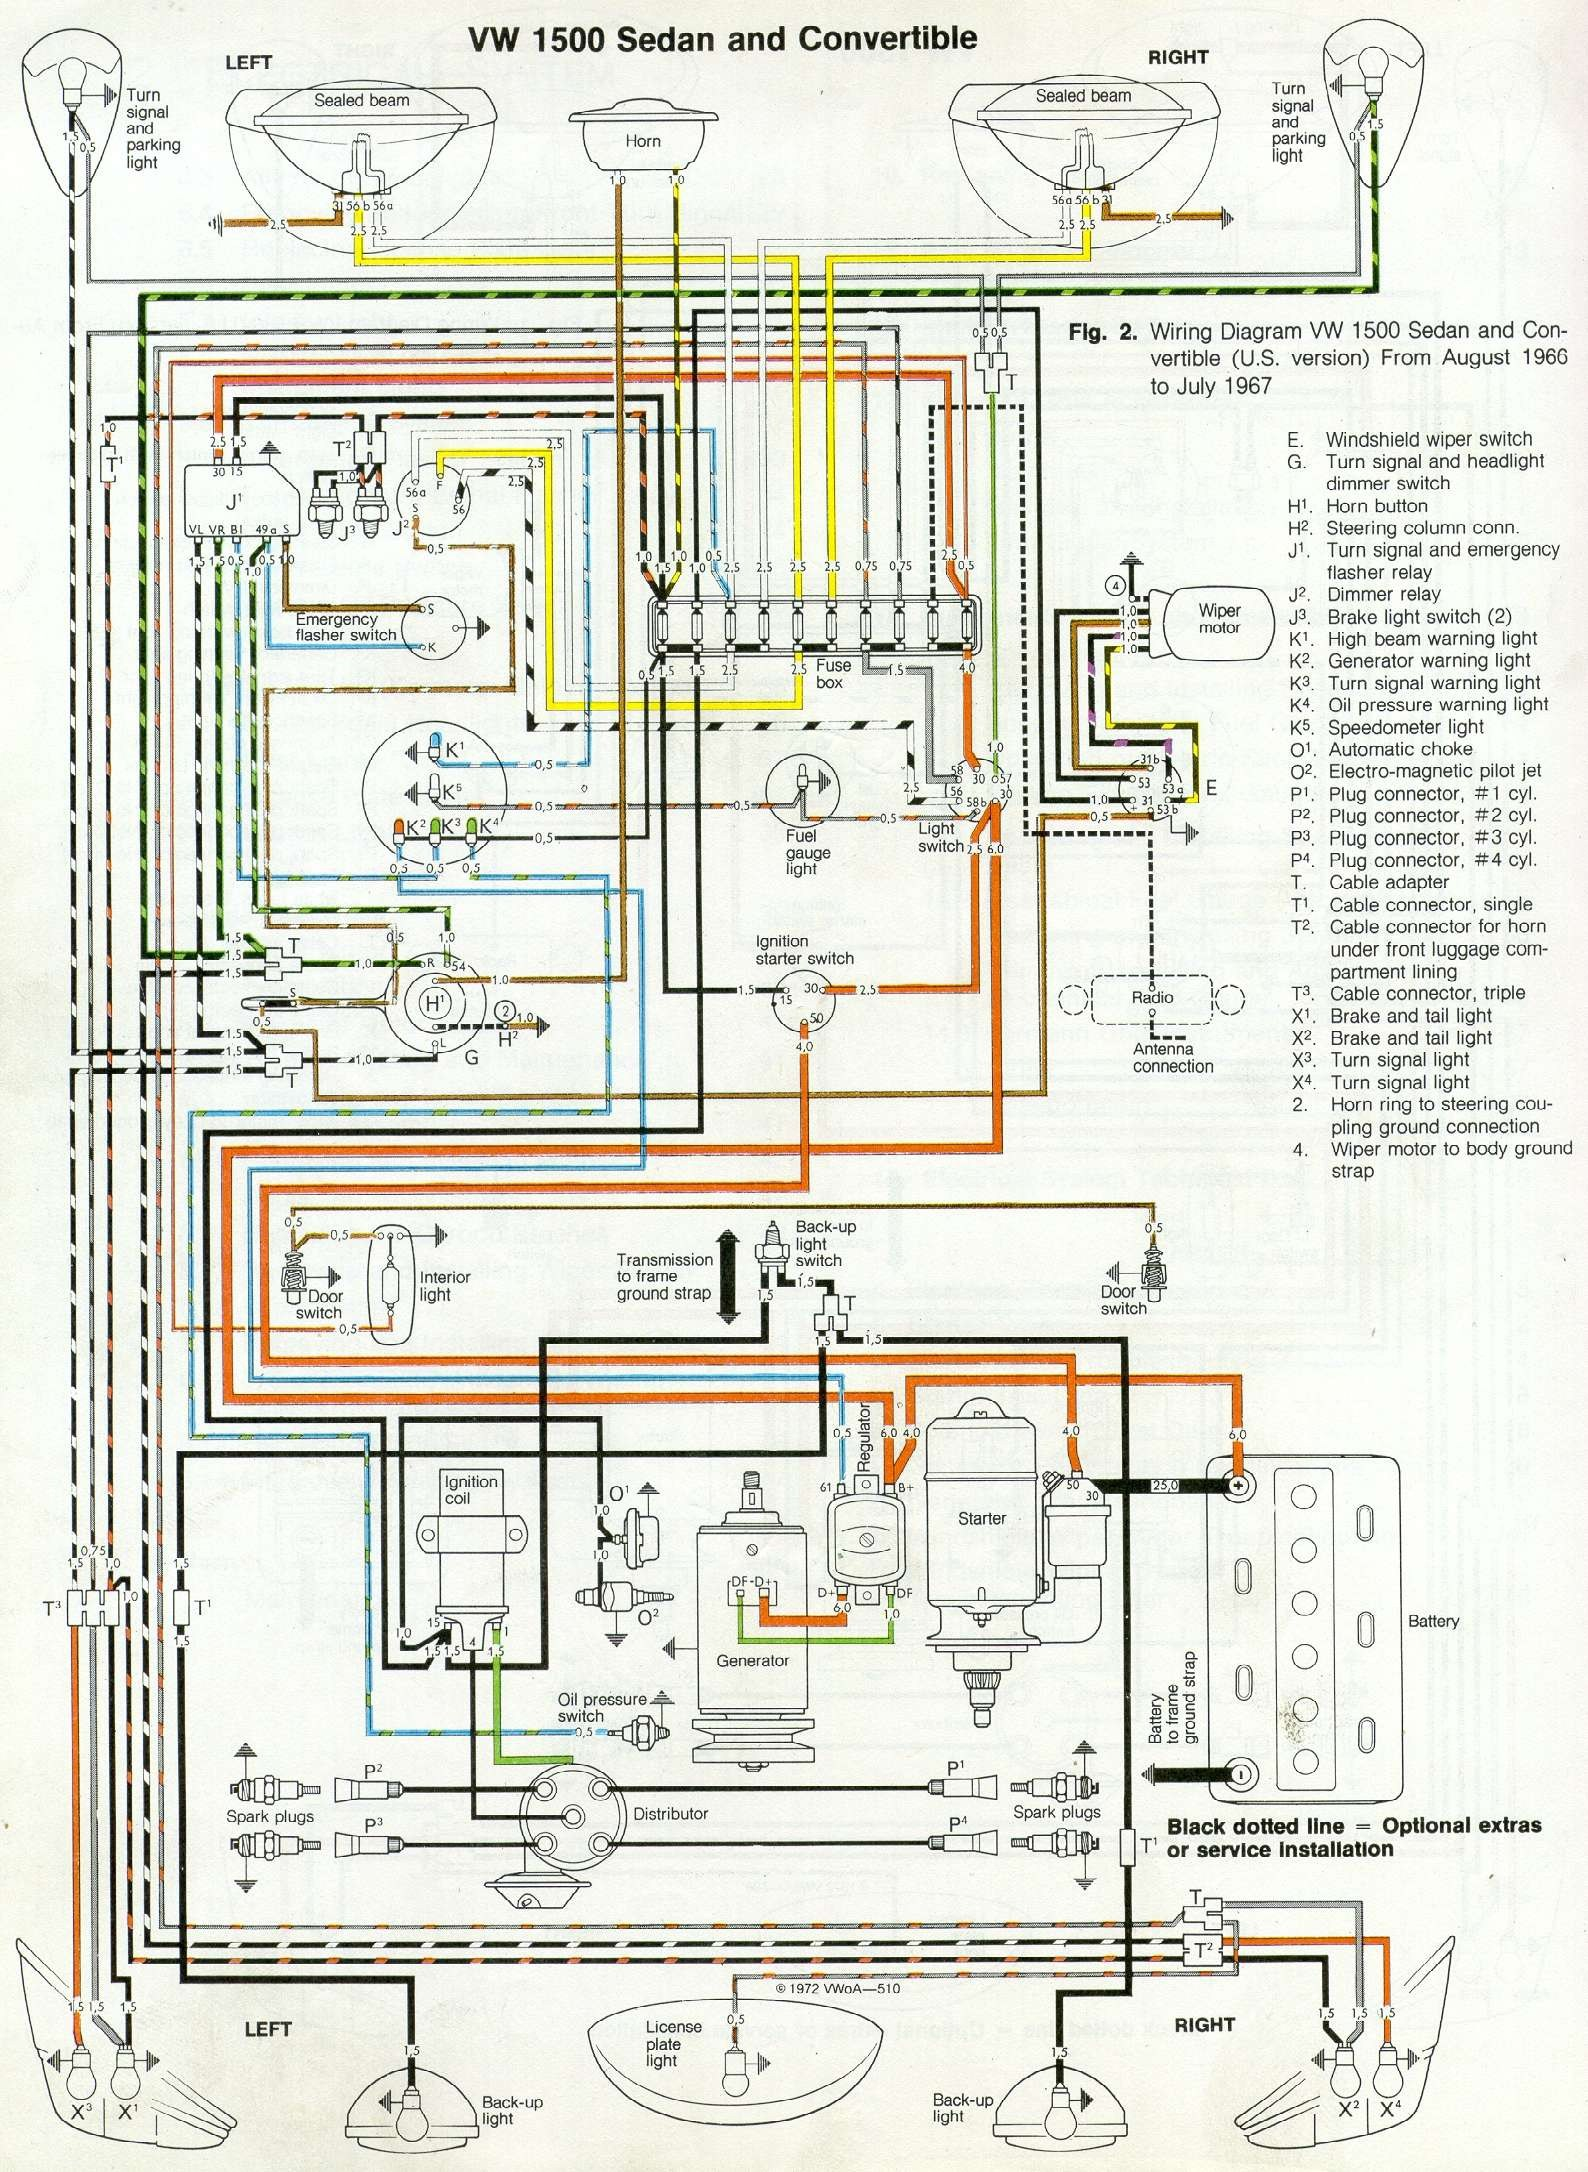 67 Cummins Wiring Diagram Worksheet And M11 Ecm Volkswagen Type 2 Harness Schematics Diagrams U2022 Rh Parntesis Co Engine